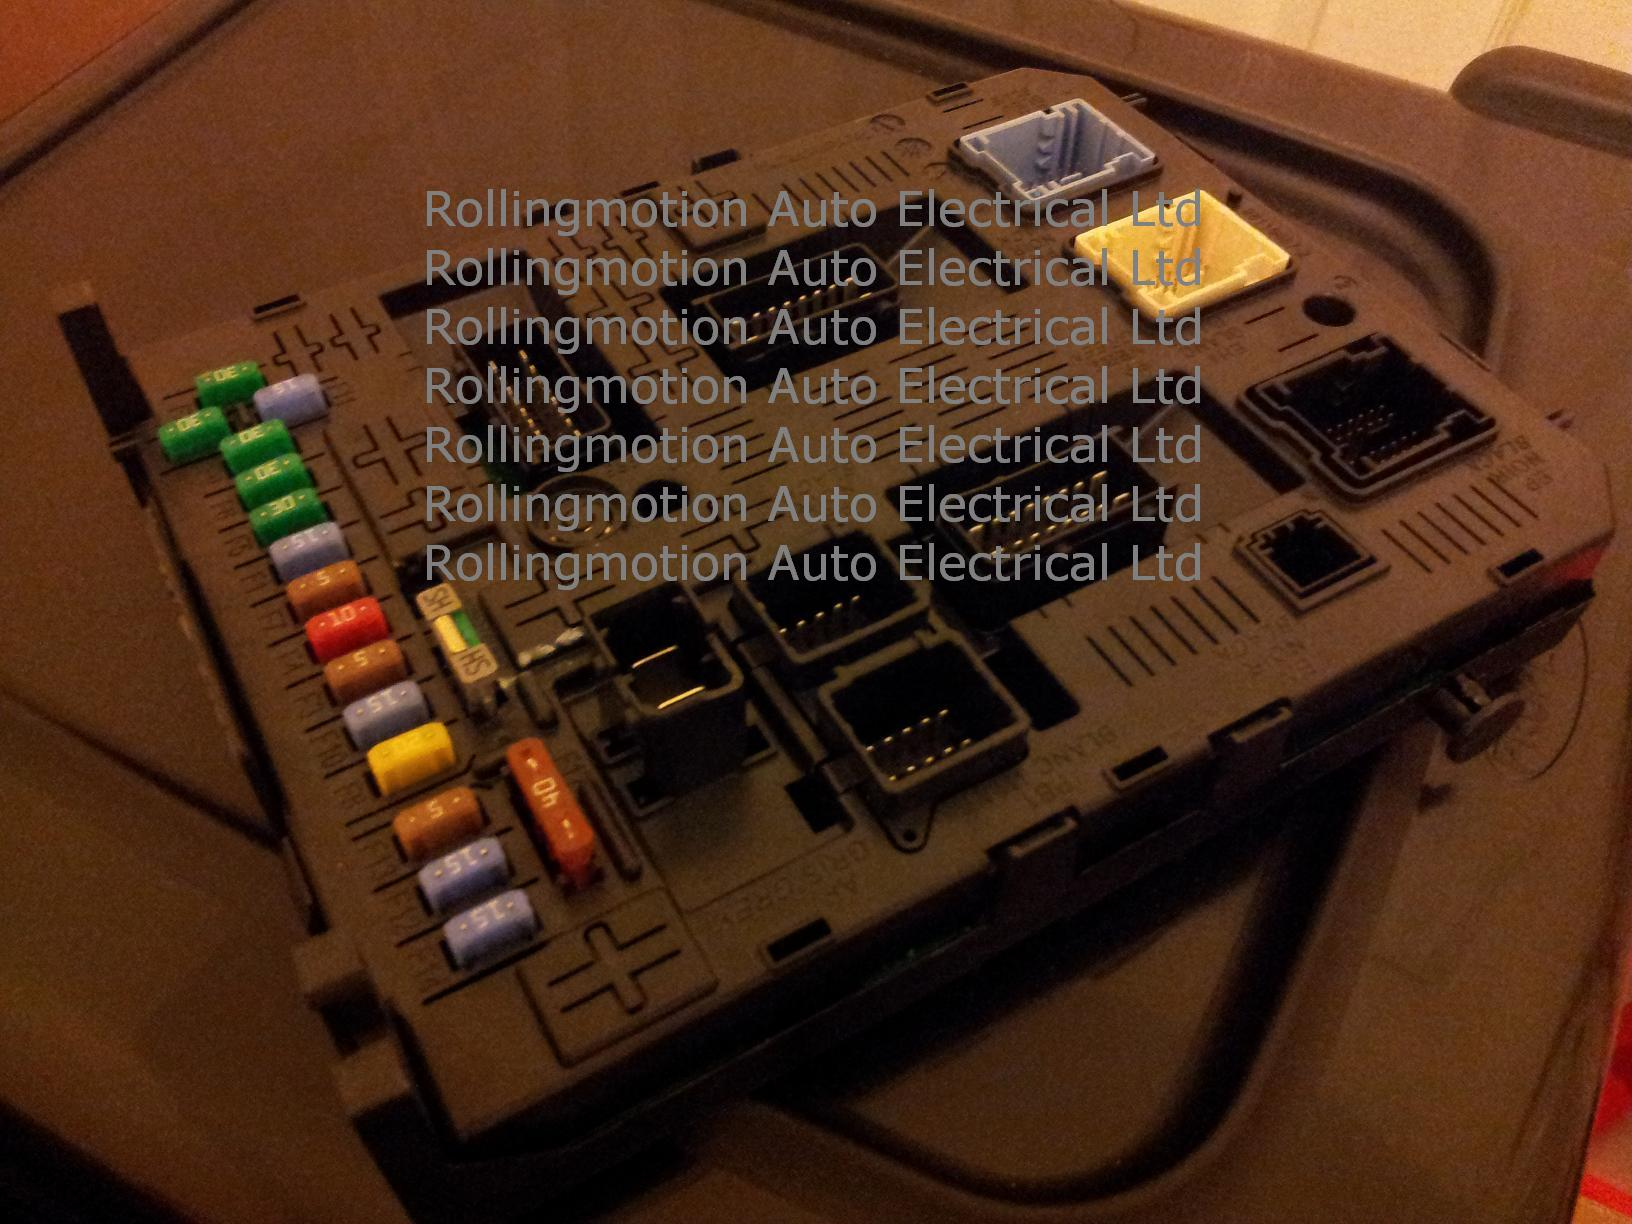 Psa Bsi Repairs Citroen Dispatch Central Locking Wiring Diagram Jc 3052